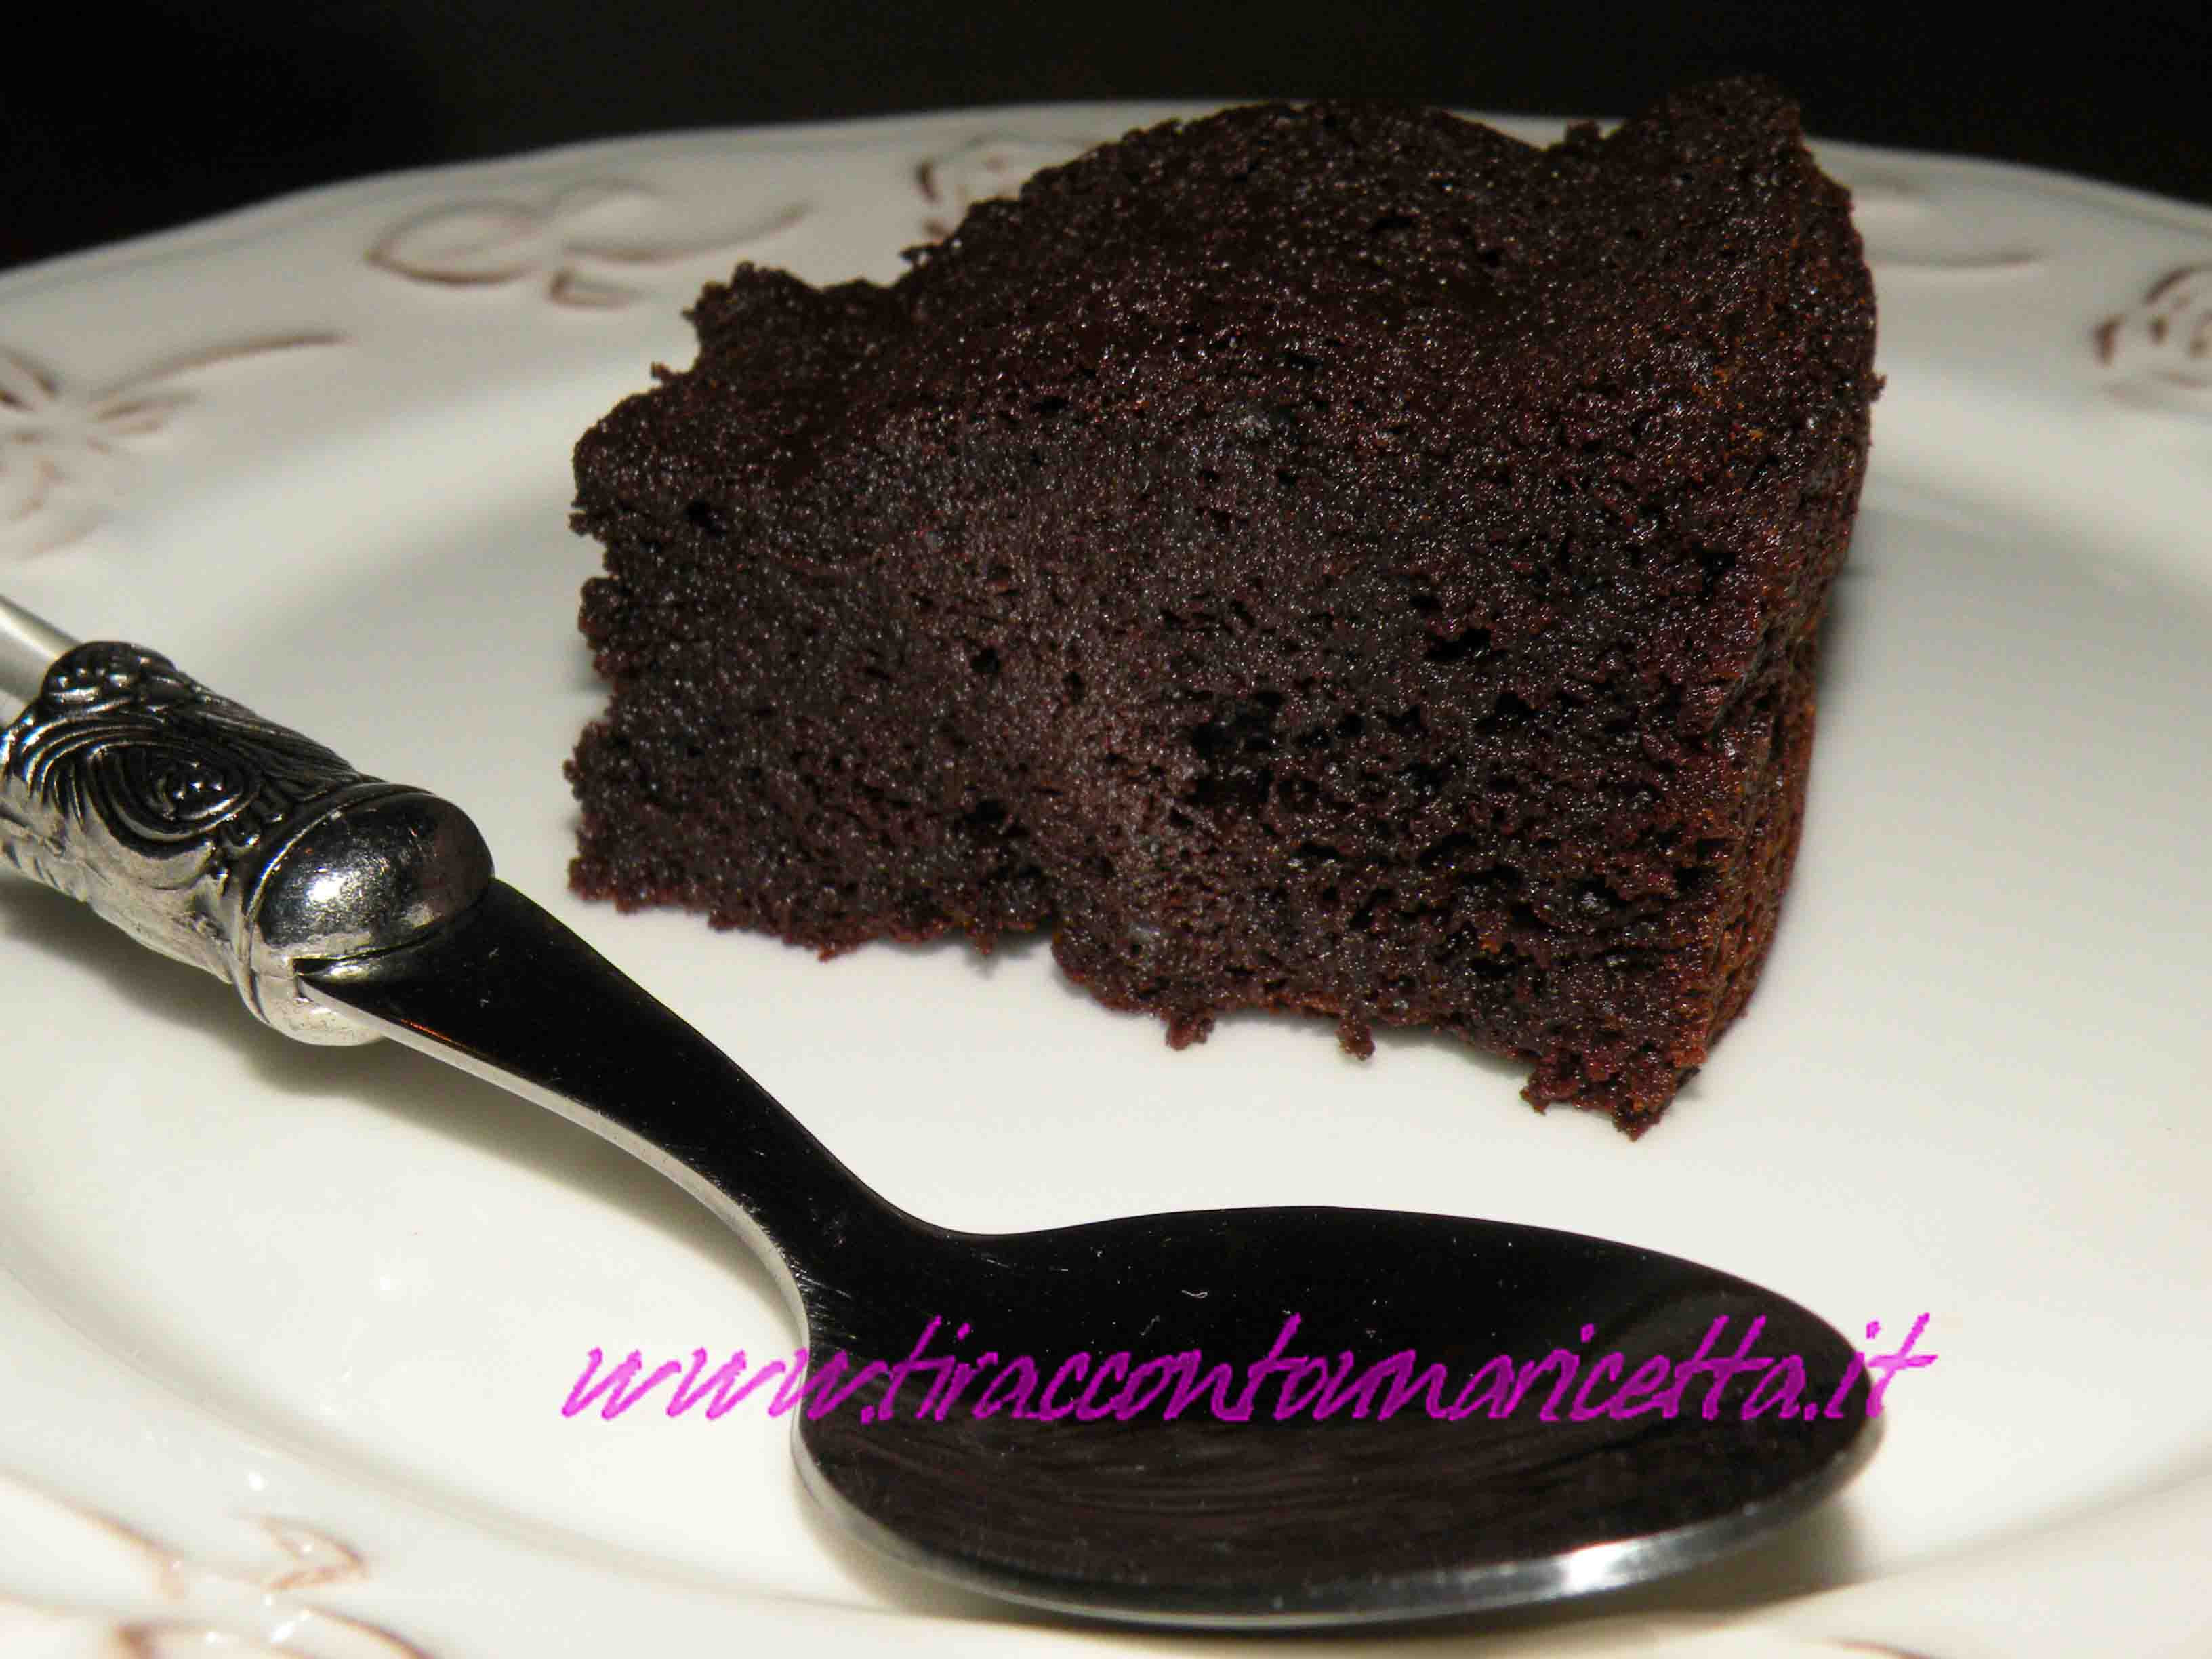 Chocolate cake for celiacs but not only for them